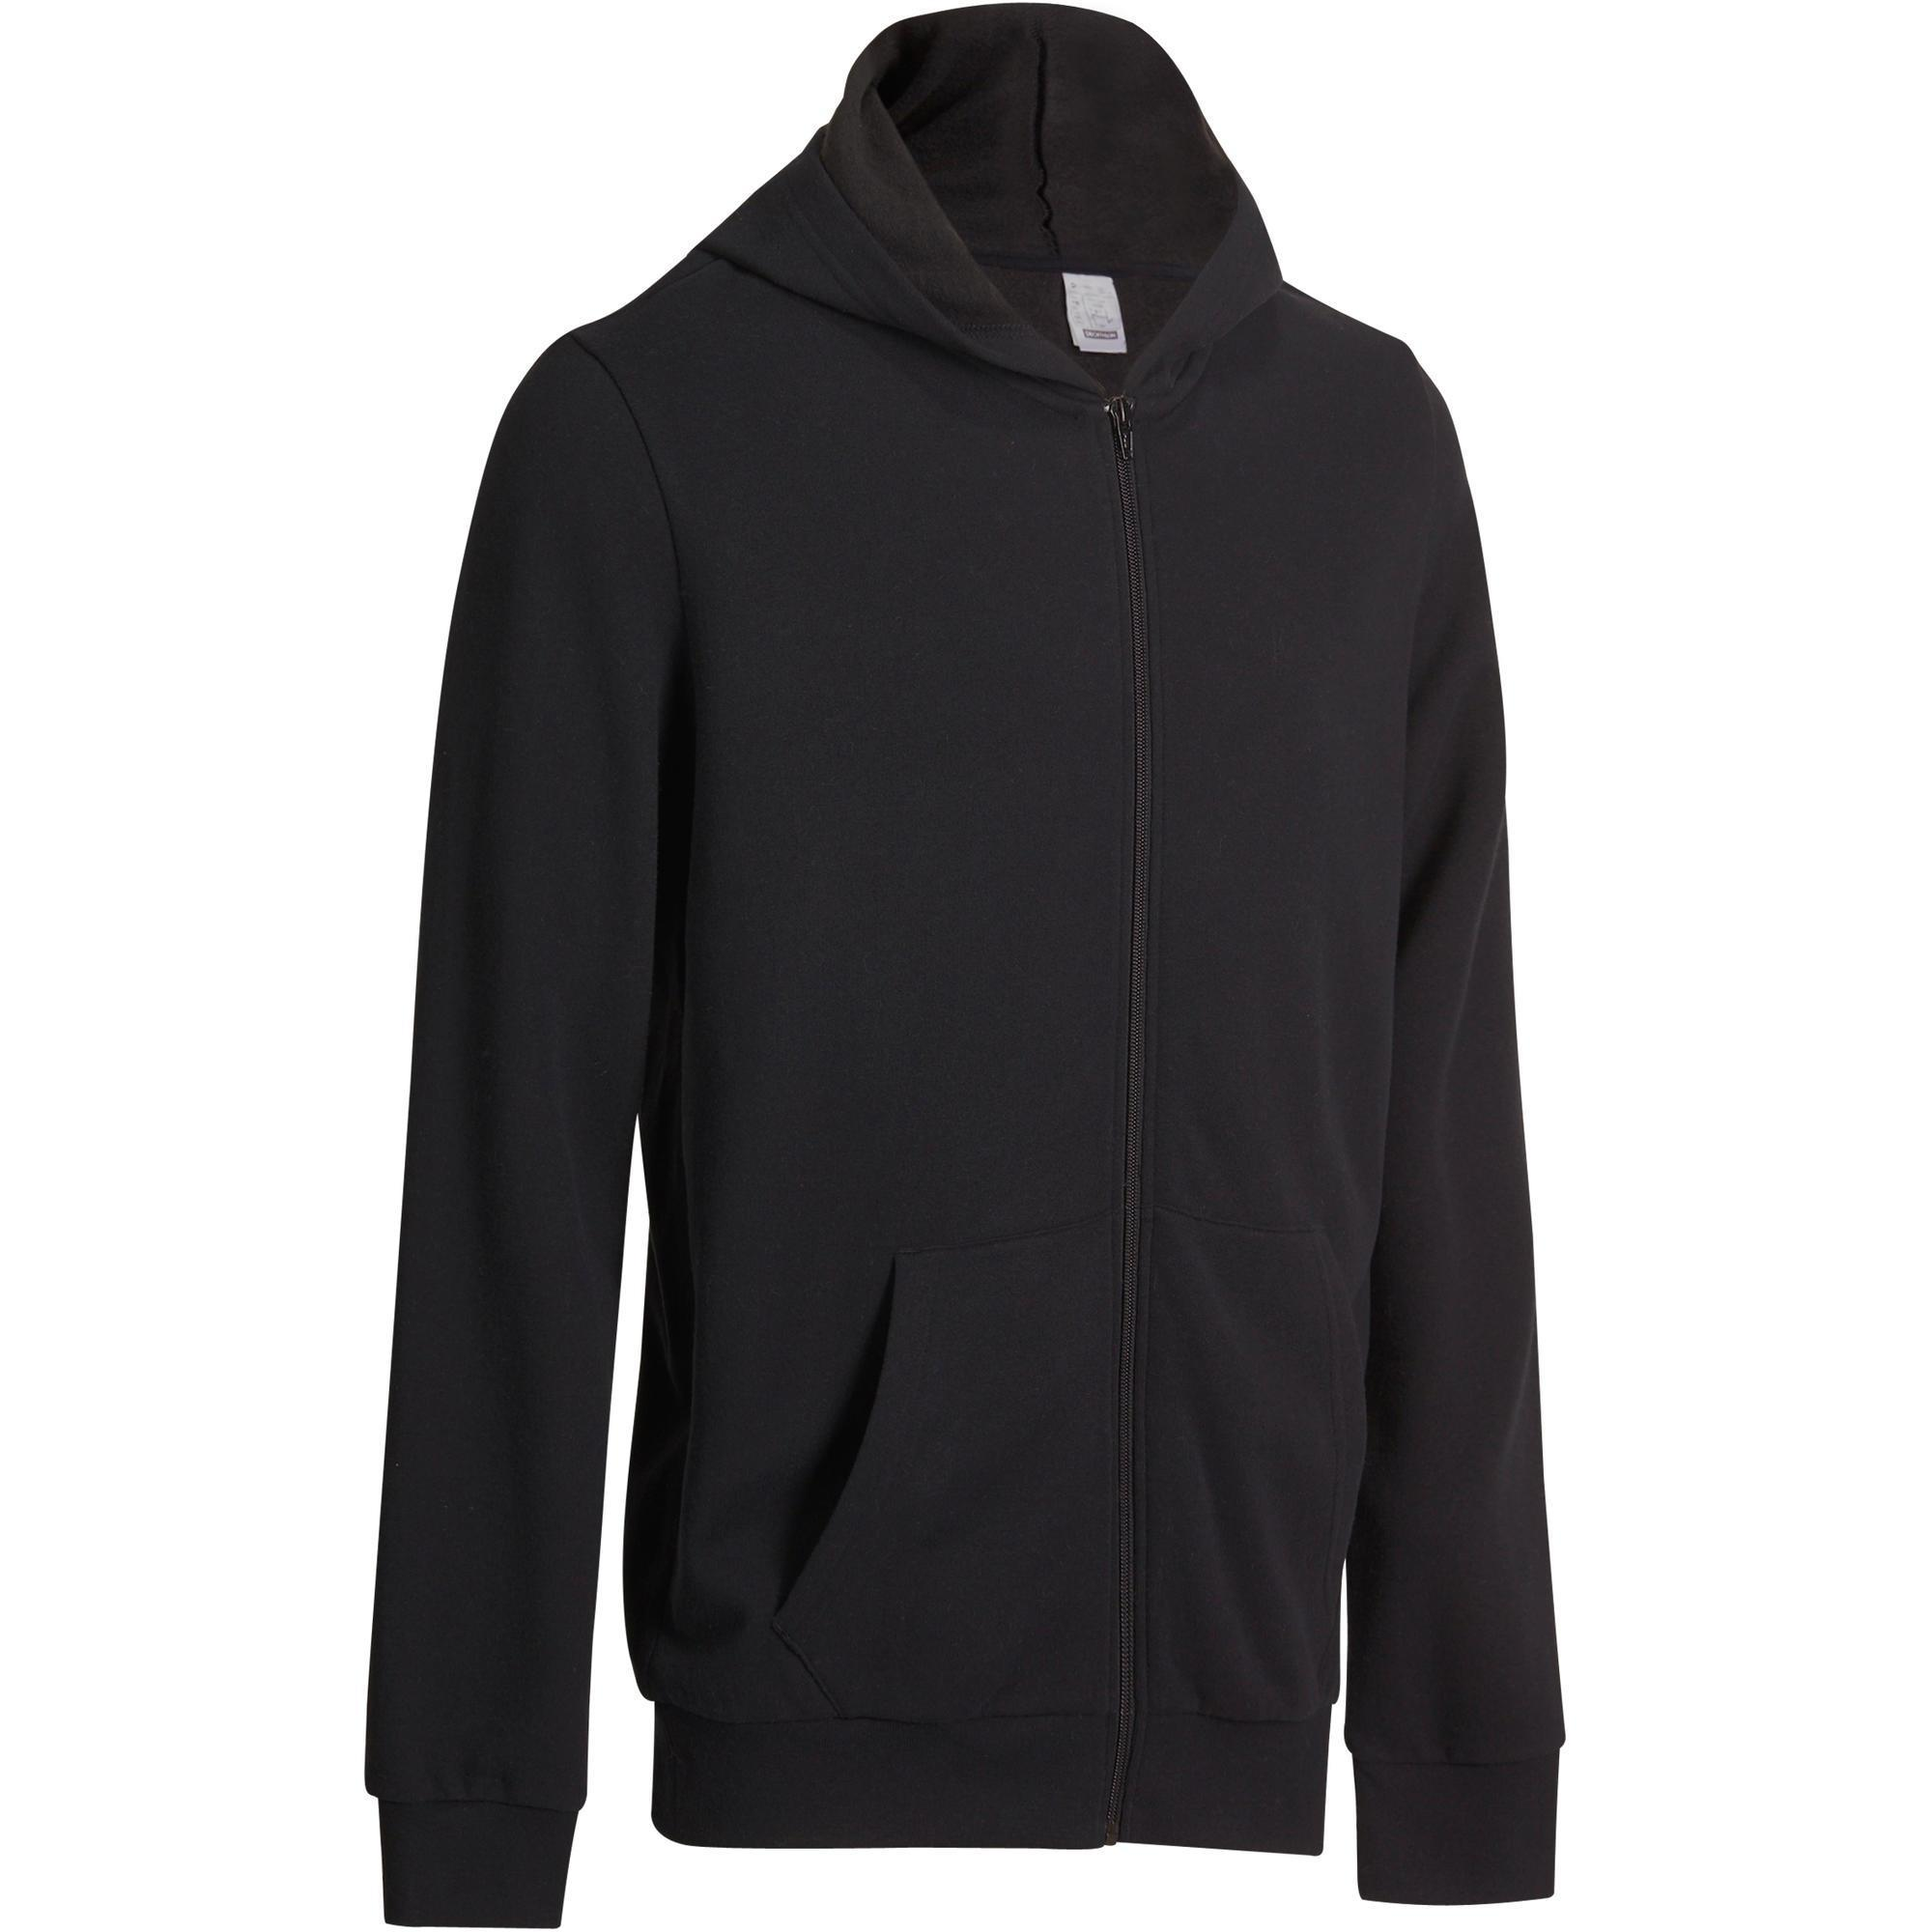 Fitness Hoodie Heren.Hoodies Heren Decathlon